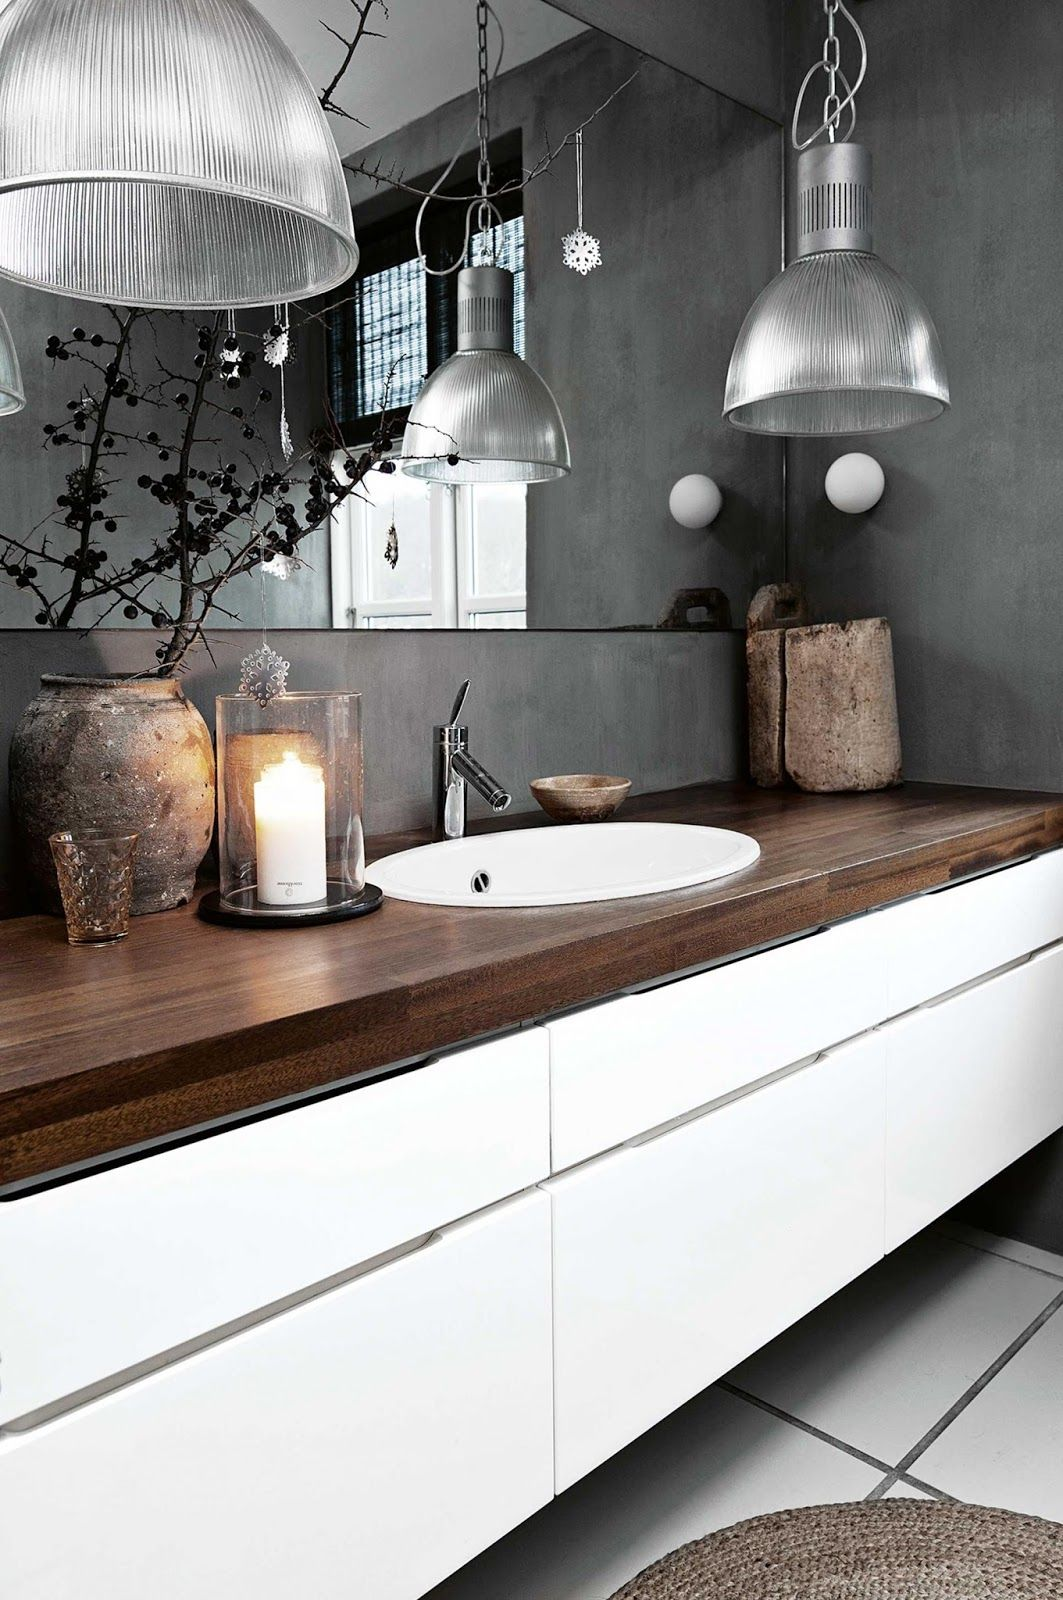 Ministry of deco inspiration pinterest interiors kitchens and